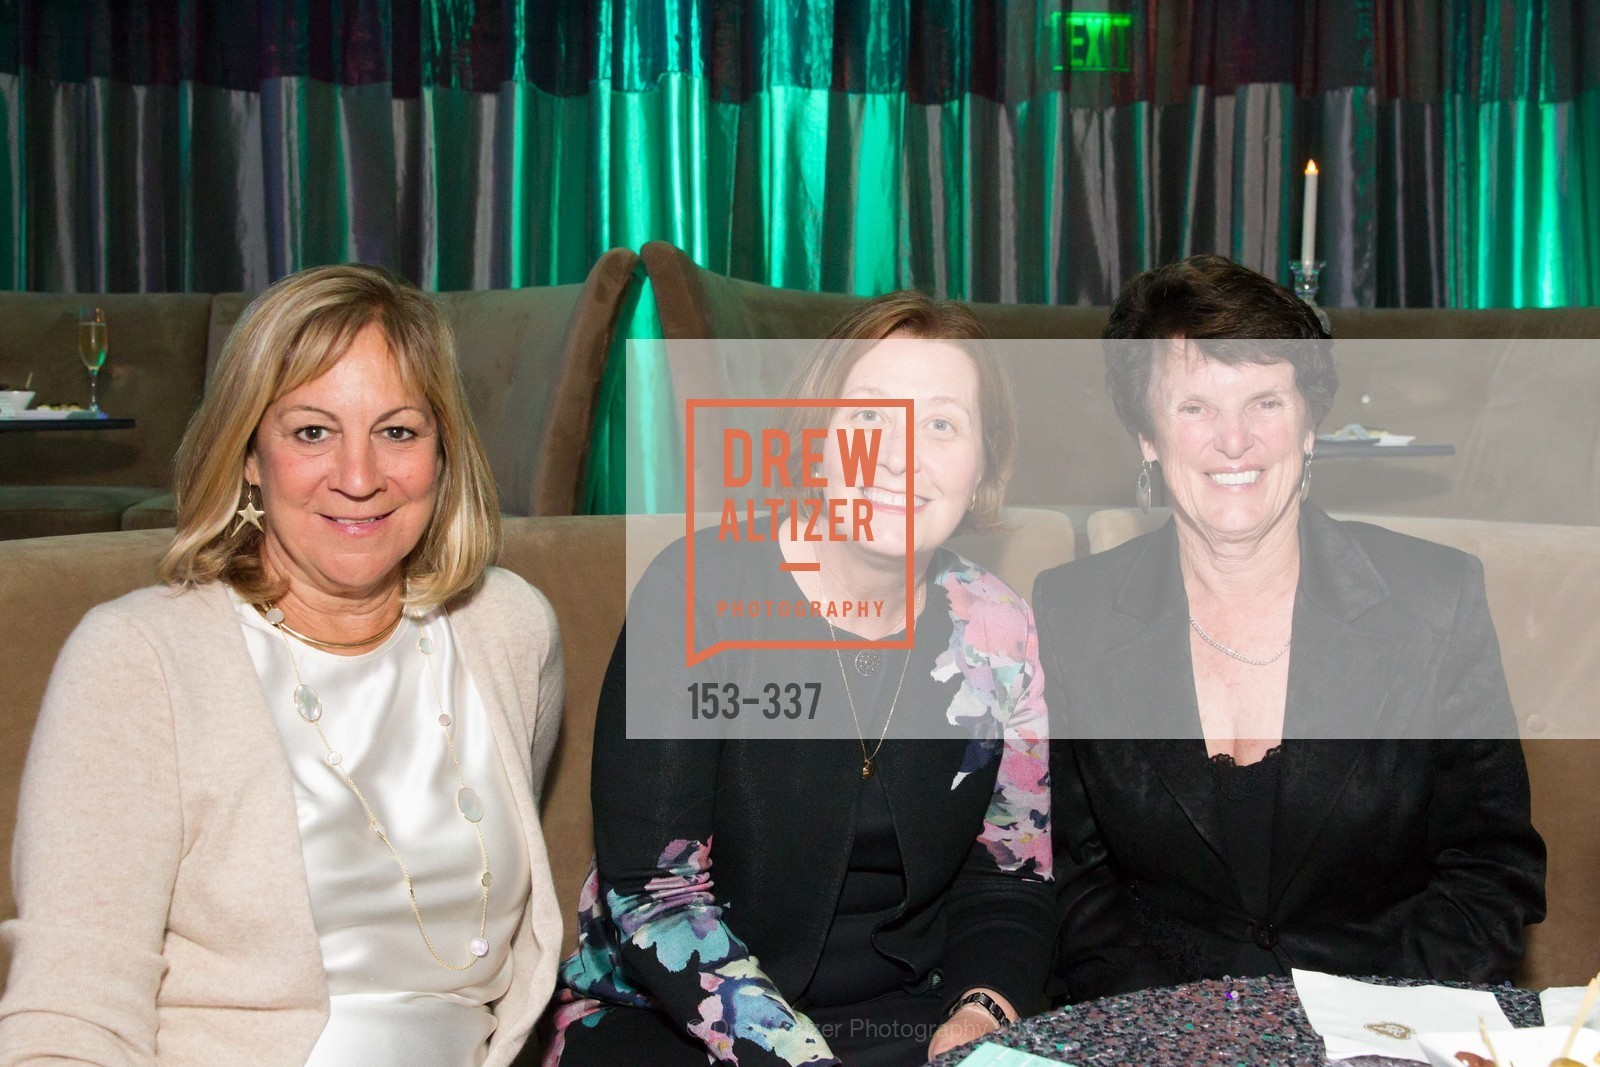 Toni Knorr, Worthy McCartney, Susie McCormick, Jazz Legends At St. Regis Presents Jamie Cullum, St. Regis, October 3rd, 2015,Drew Altizer, Drew Altizer Photography, full-service agency, private events, San Francisco photographer, photographer california